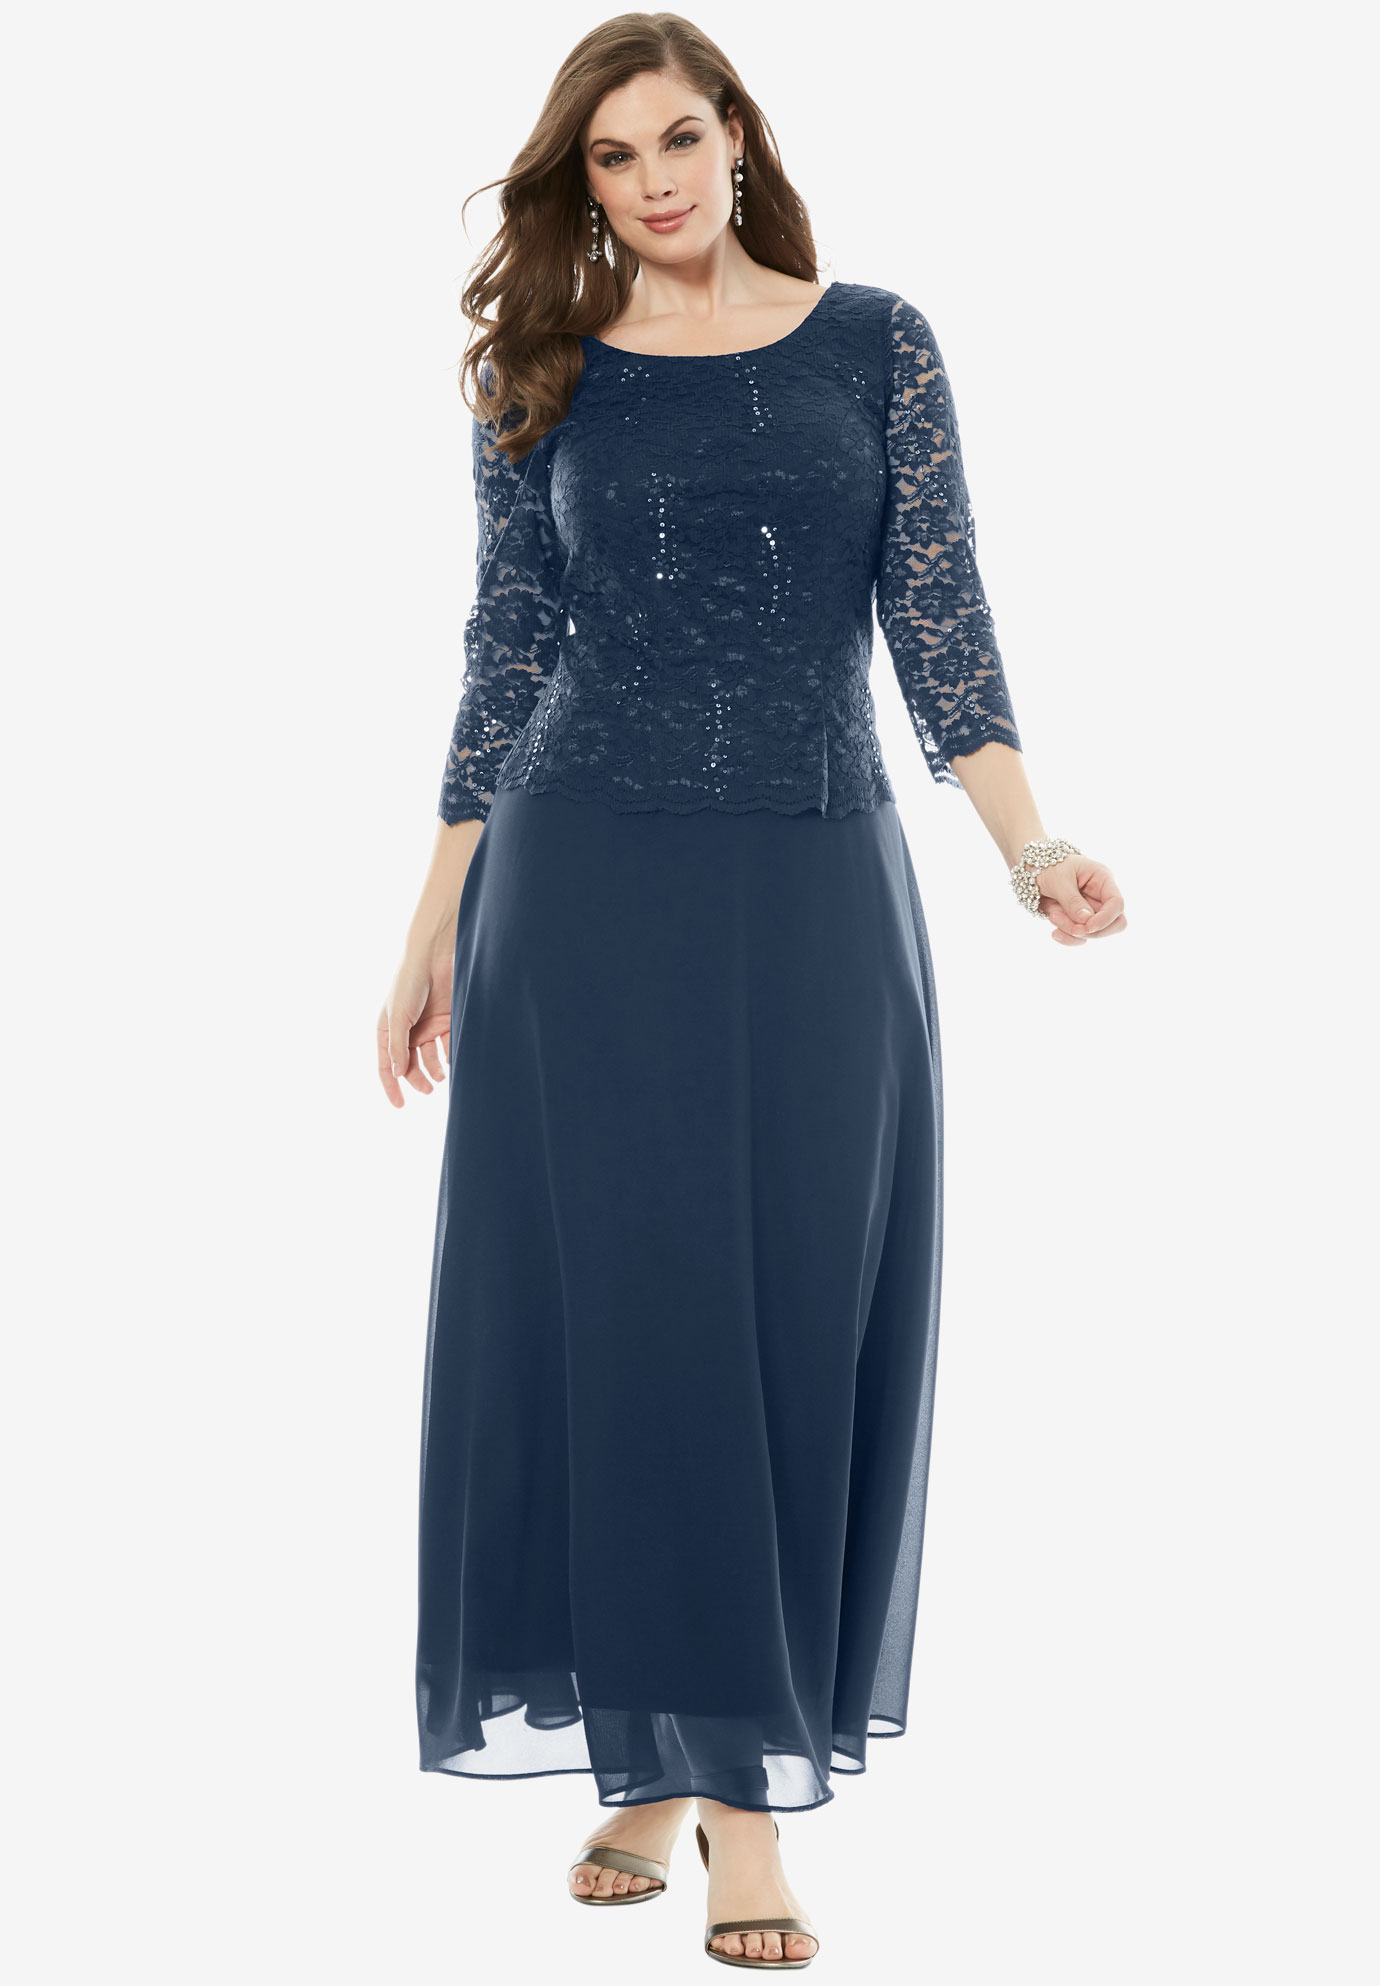 Plus Size Evening Dresses for Women | Roaman\'s